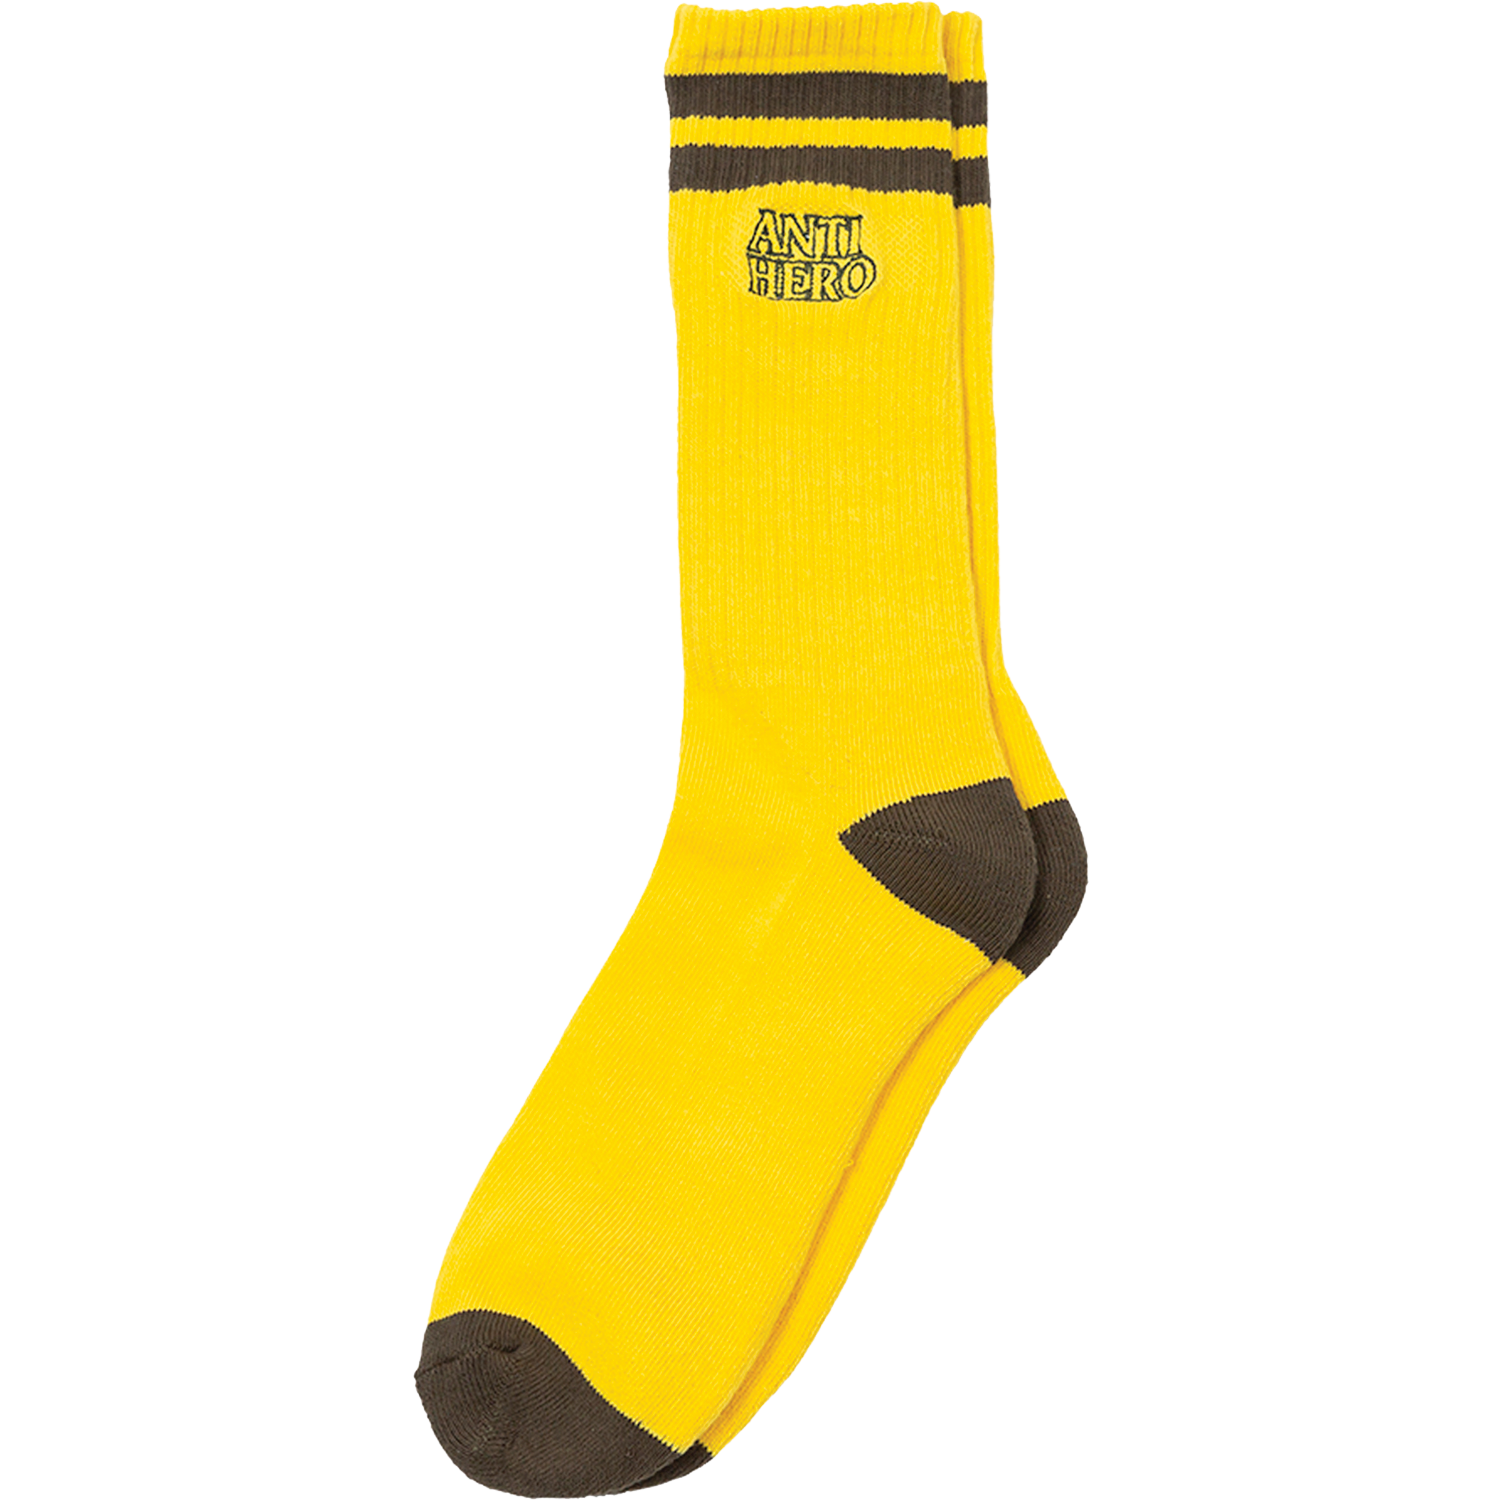 Anti Hero Black Hero Outline Yellow / Brown Crew Socks